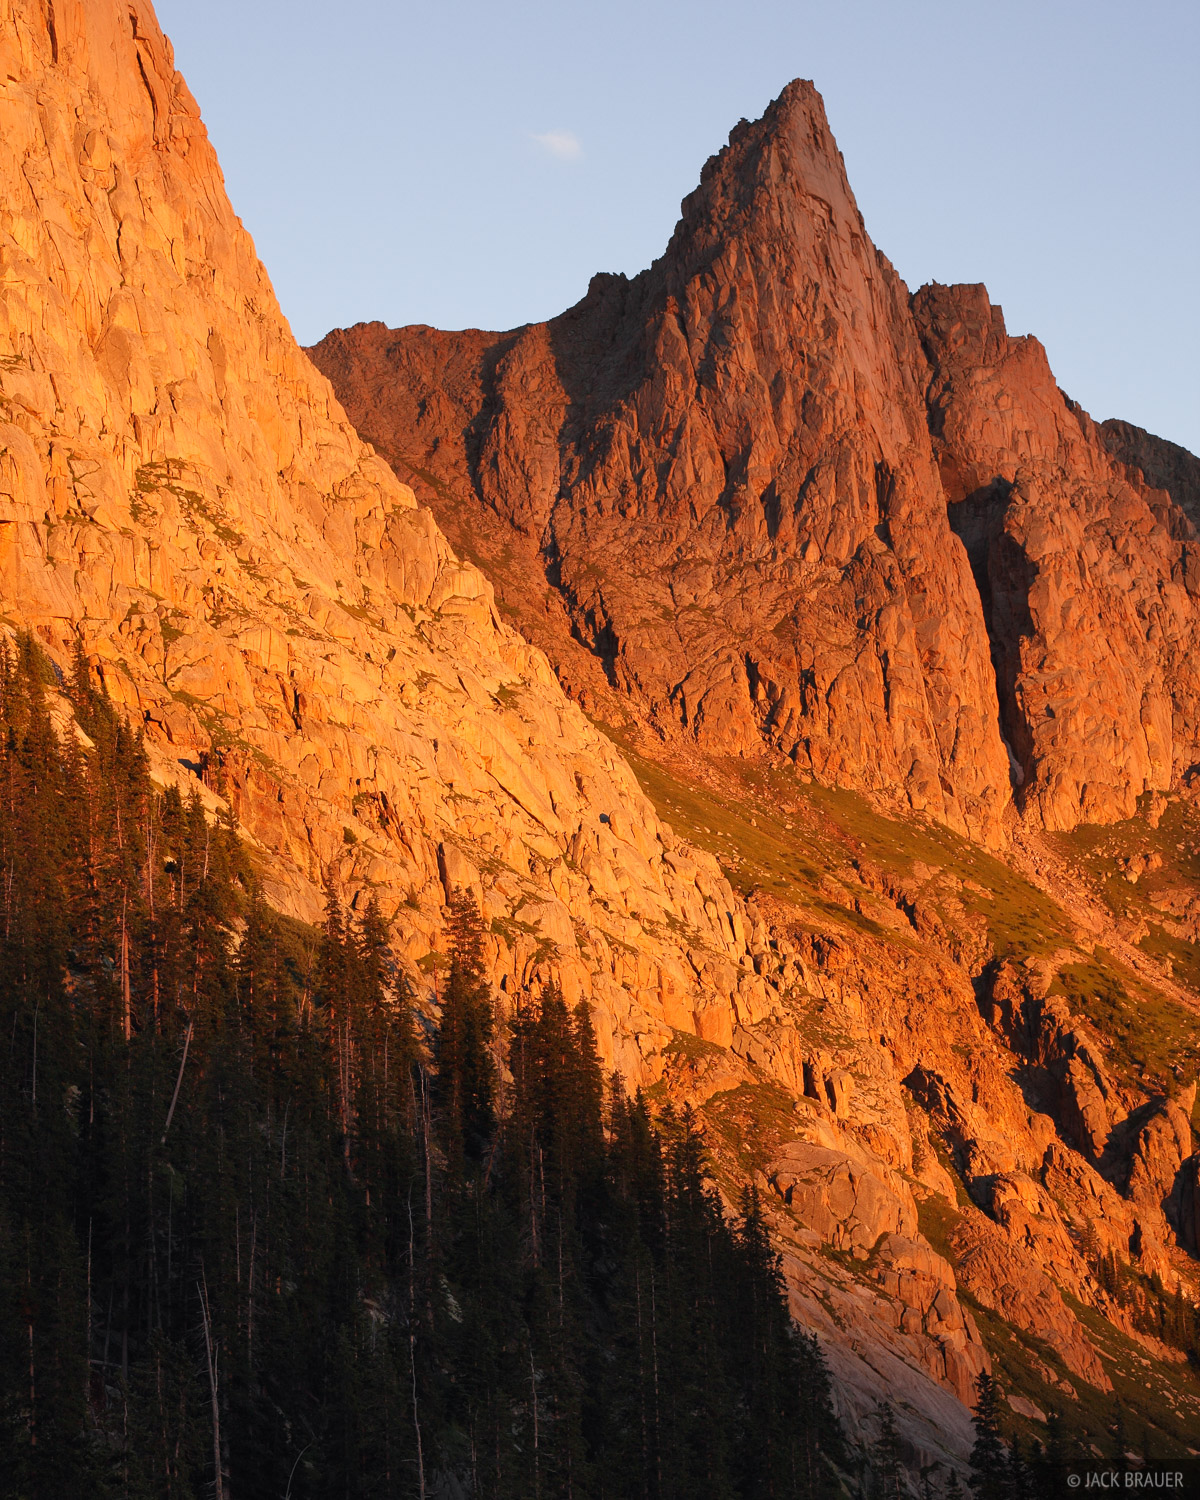 Sunset alpenglow on Knife Point, a rugged spire in the Needle Mountains.  In 2008 I hiked up to the top of this peak to...